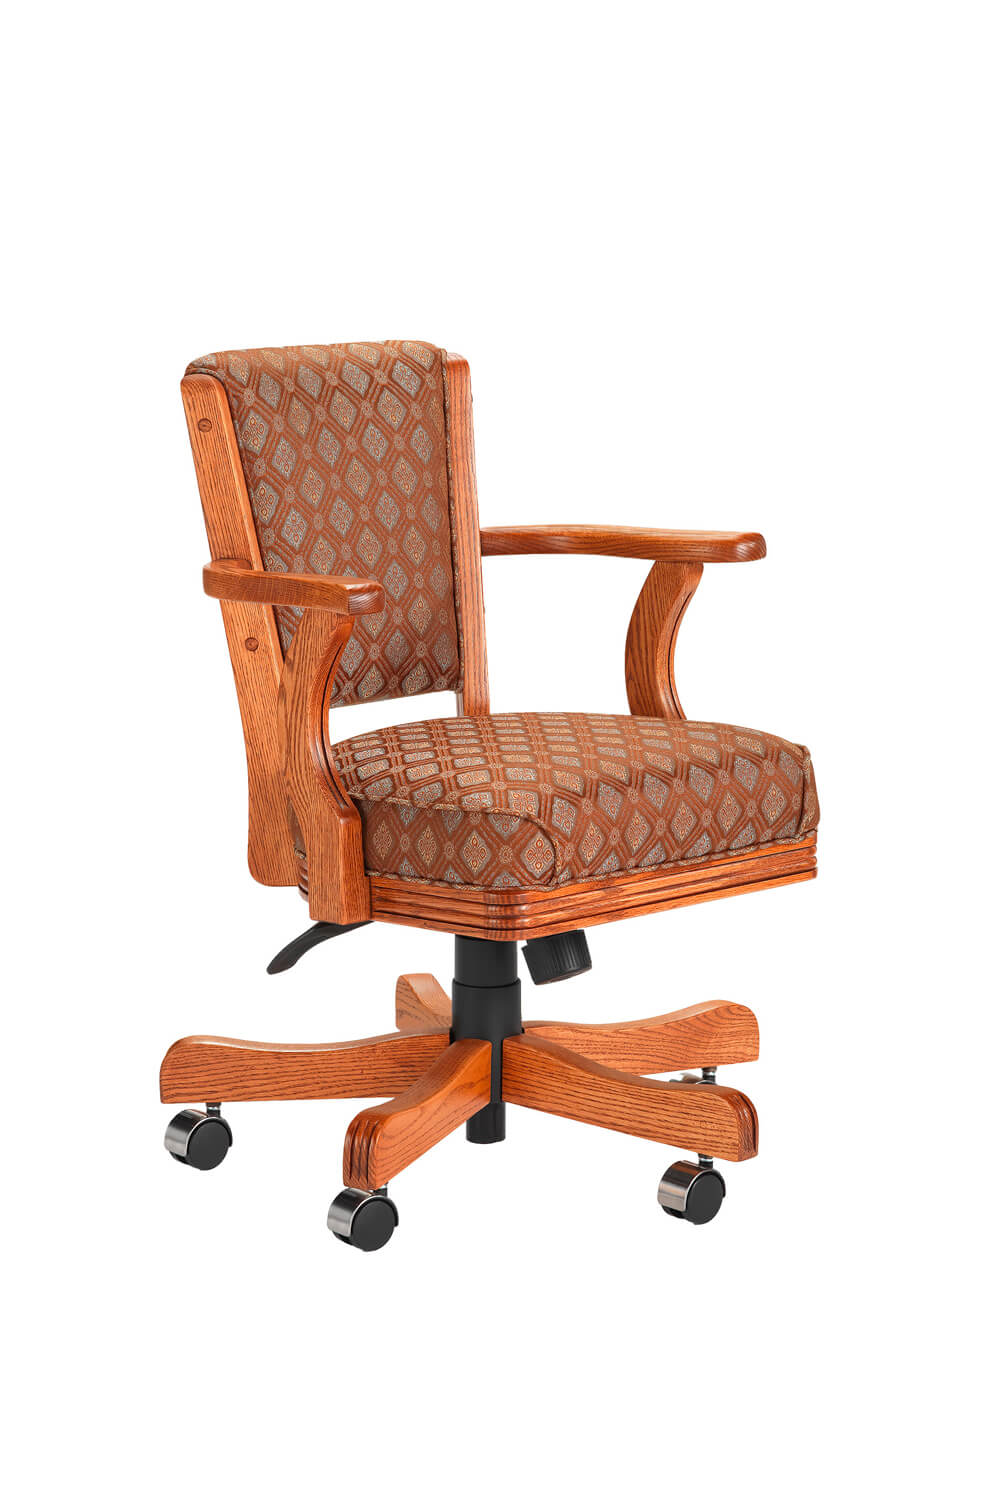 610 Oak Wood Upholstered Arm Game Chair with Casters